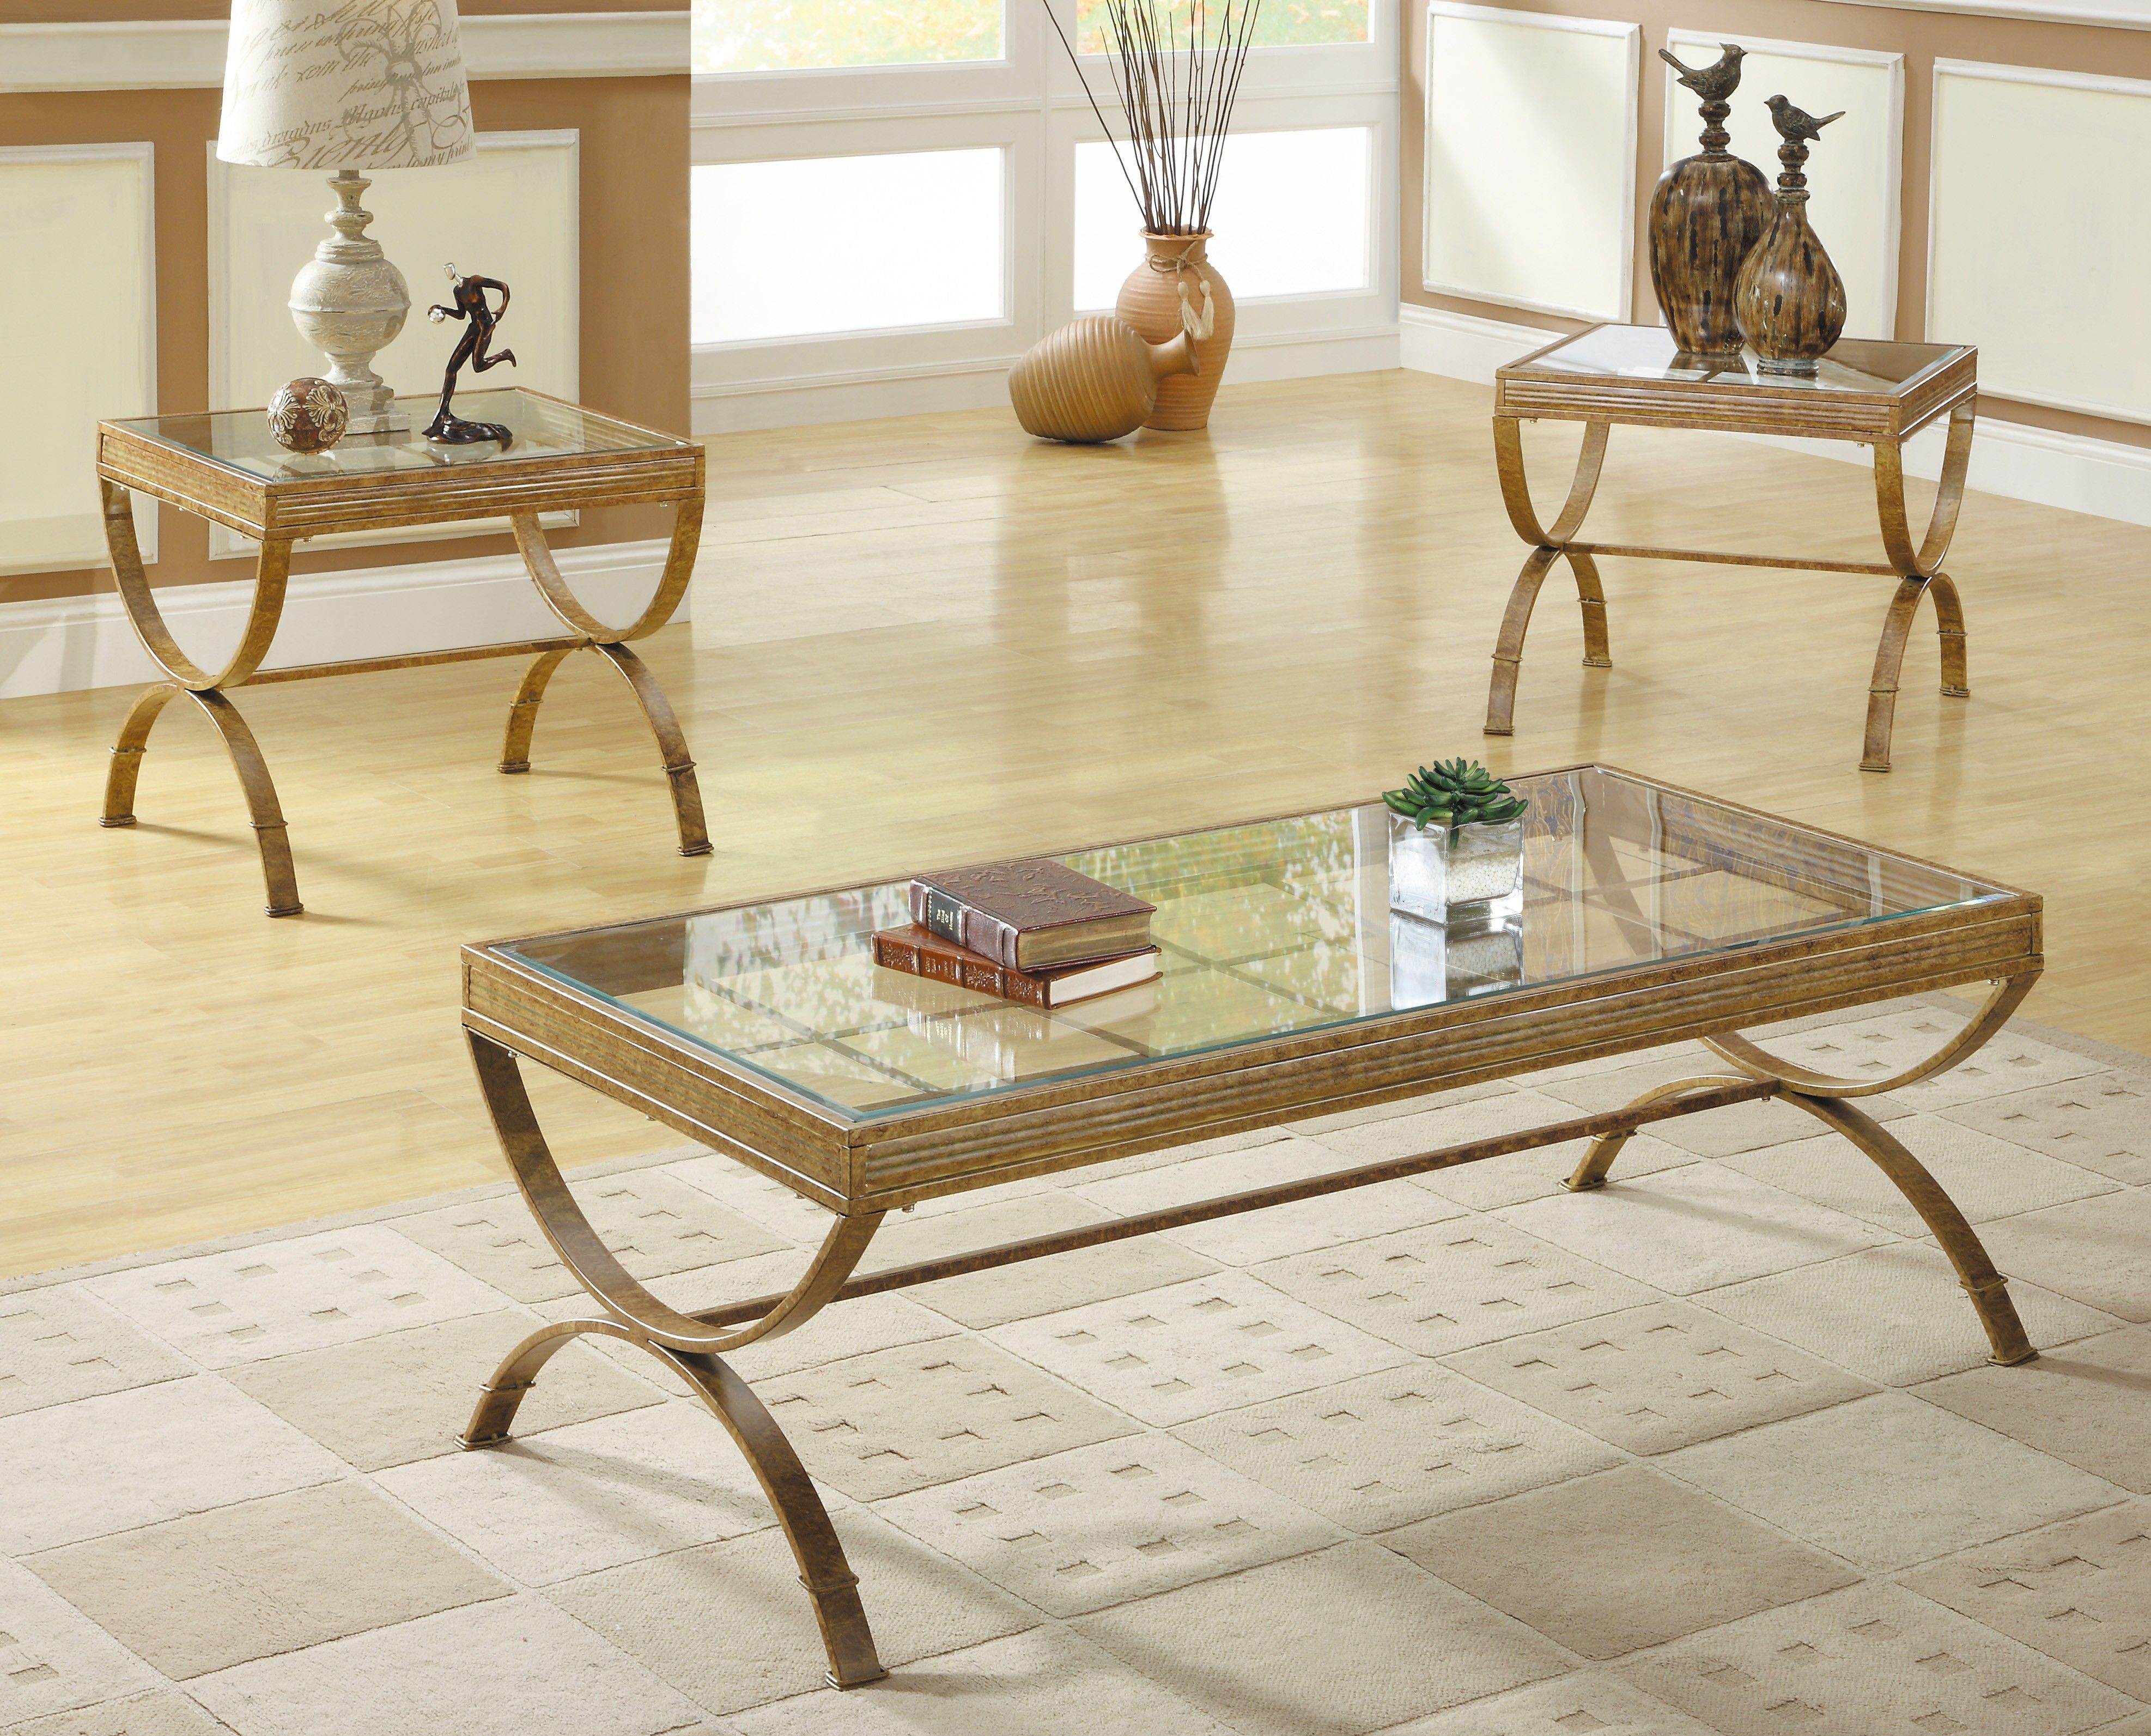 At Home In A Number Of Casual Living Room Settings Is The Claro Collection Glass Table Living Room Coffee Table Living Room Table Sets [ 3186 x 3948 Pixel ]